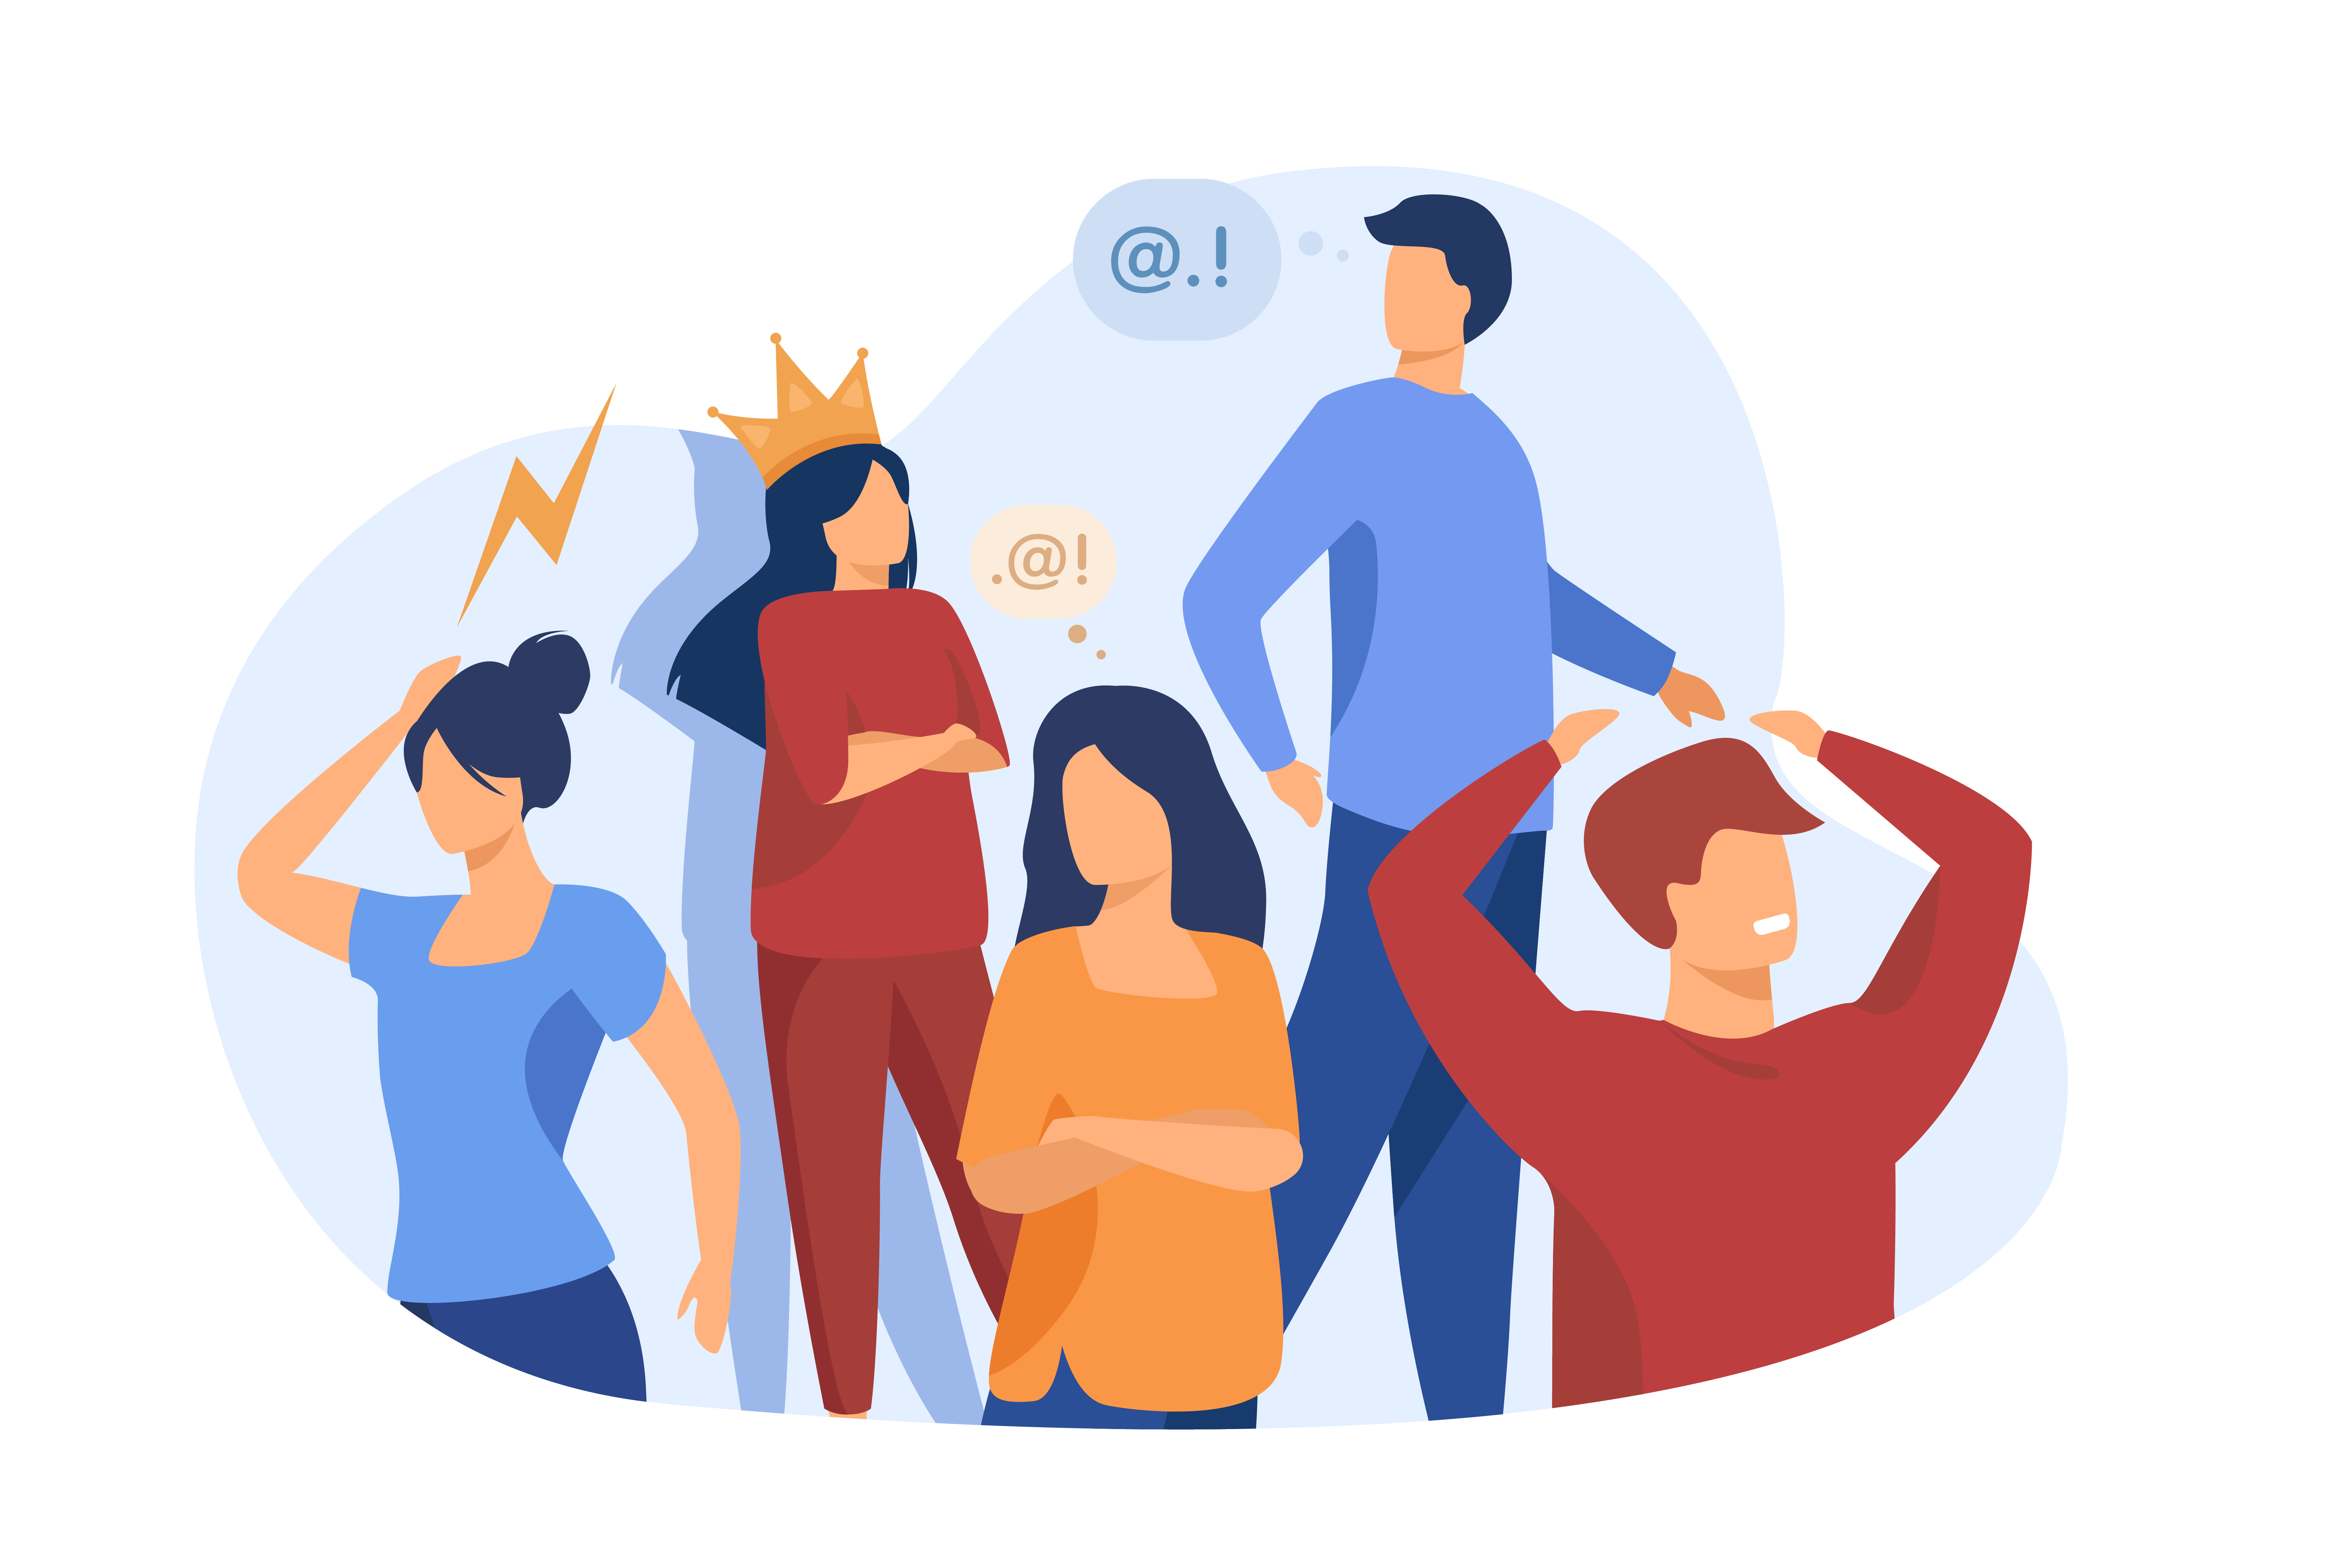 Arrogance, anger, boredom, selfishness, pride: The reasons for failed communication can be many but it is easier to change our attitude so that conflicts do not arise. Illustration by Pch.vector/ Freepik